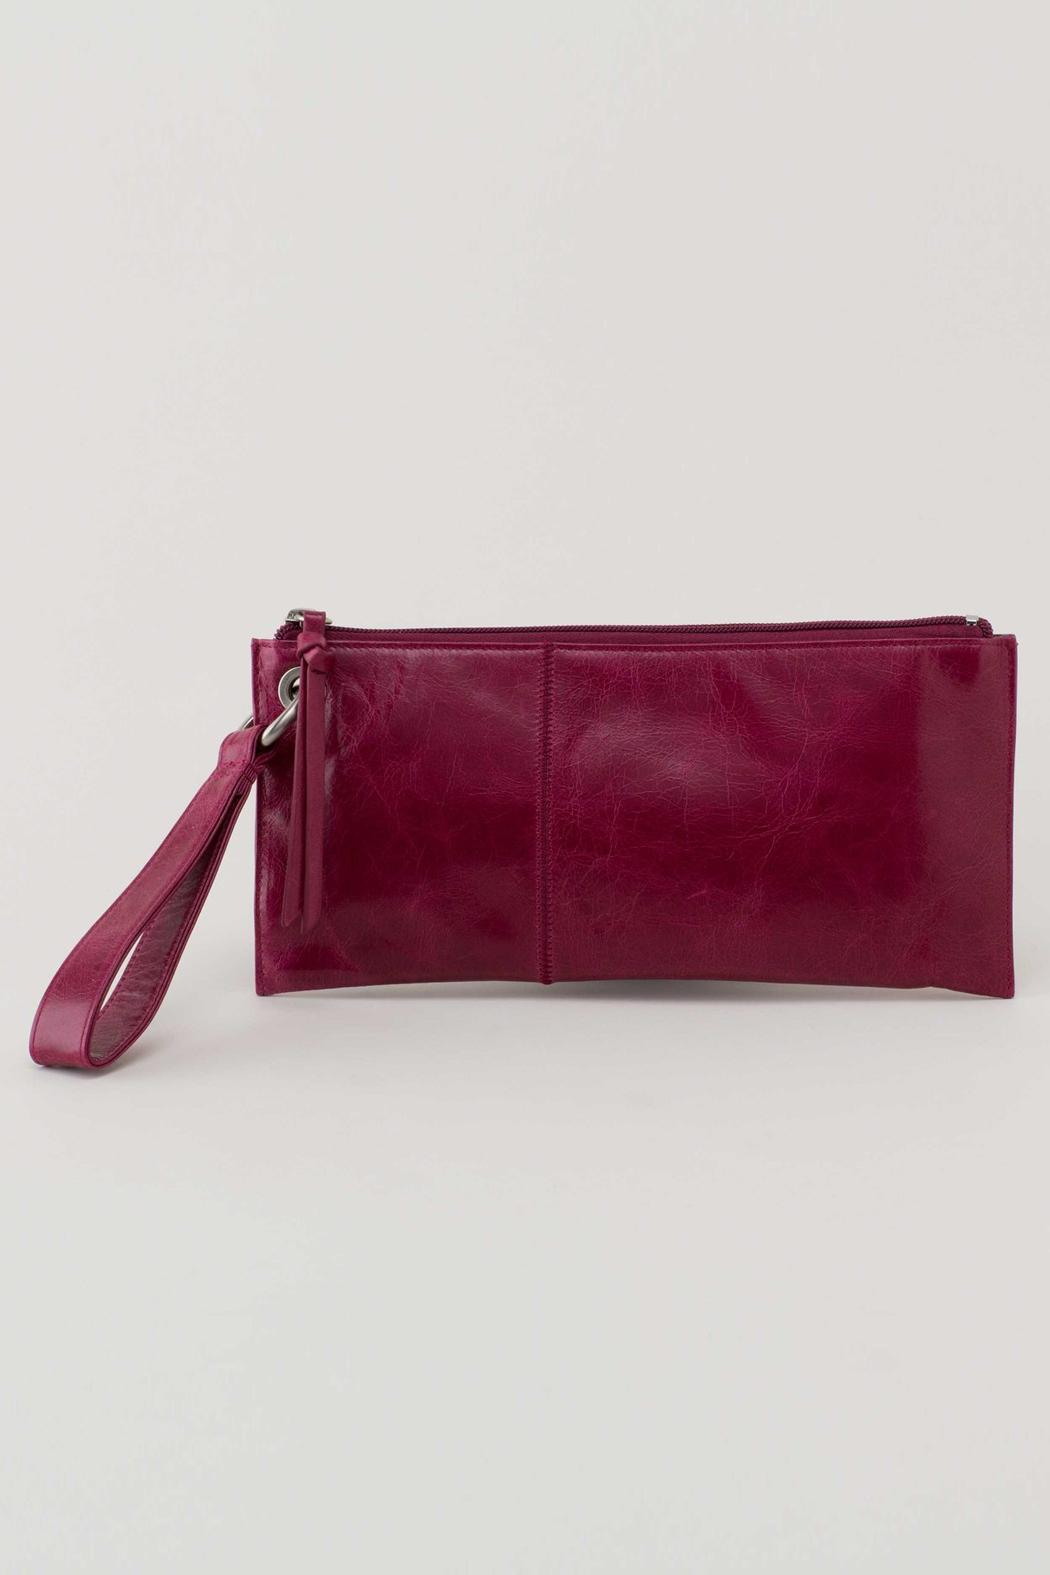 VIDA Leather Statement Clutch - Pink Flowerets by VIDA